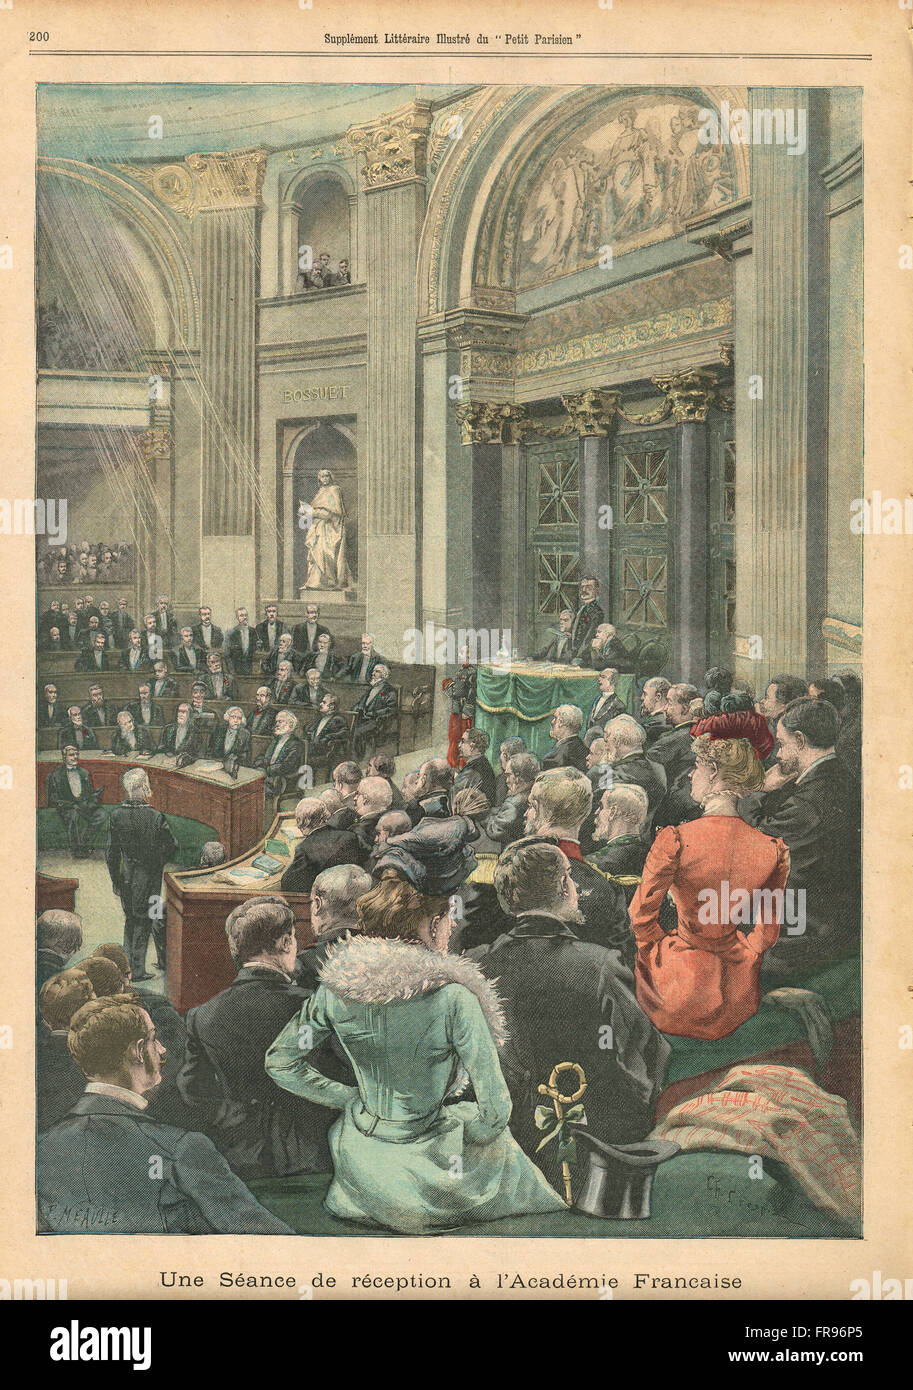 Meeting of the Academie Francaise 1900 - Stock Image